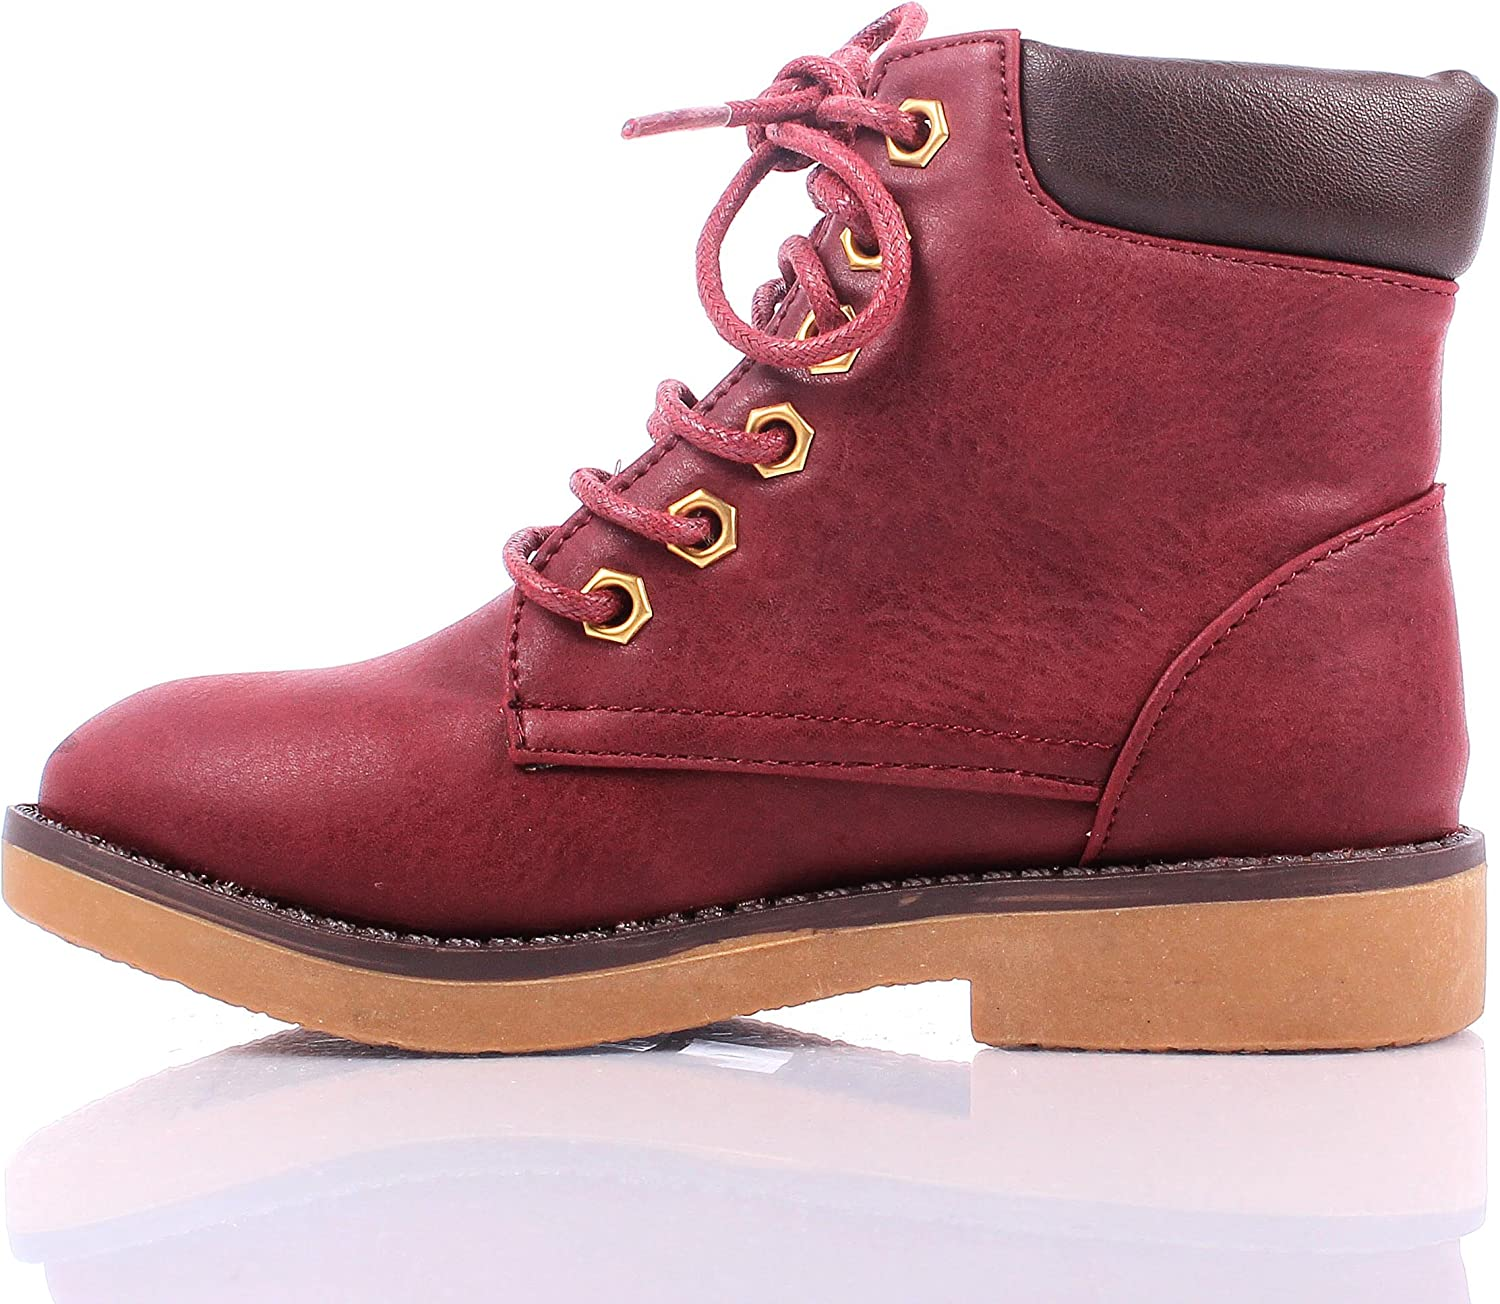 weyoh New Casual Two Tone Style Lace up Girls Military Combat Kids Ankle Boots Youth Size Shoes New Without Box